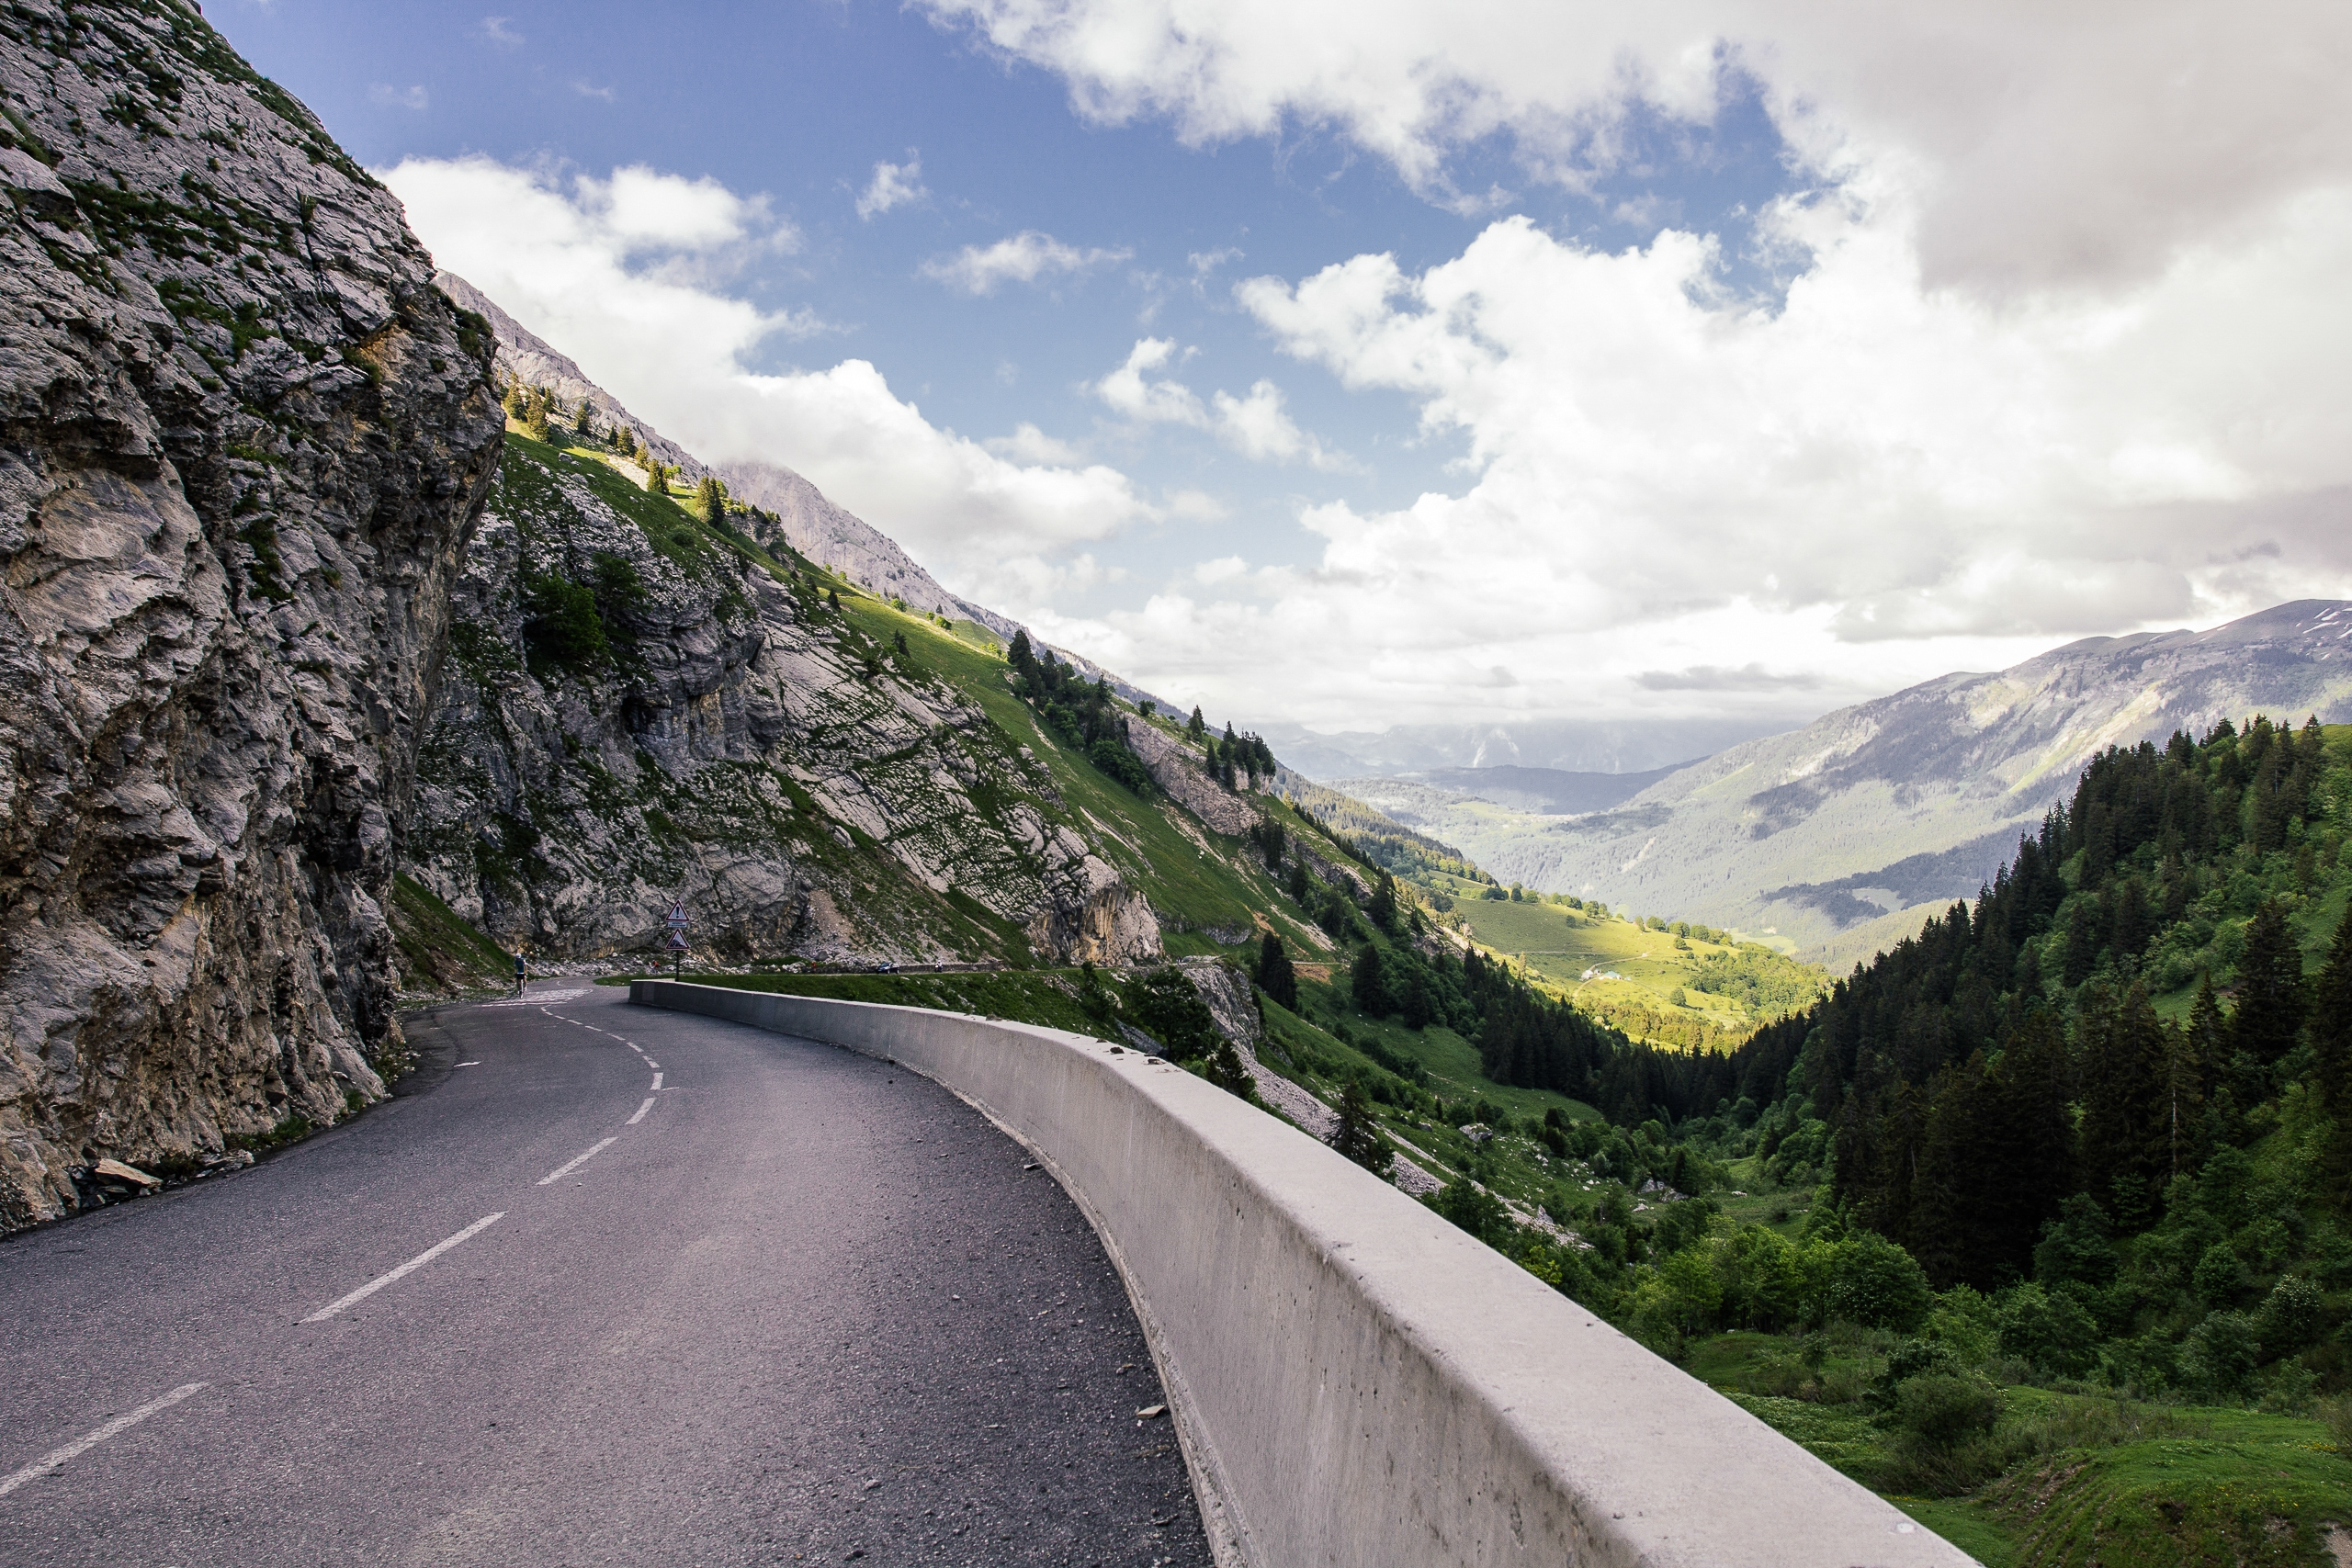 Road  Highway  Driving And Countryside Hd Photo By Alex Talmon   Alextalmon  On Unsplash